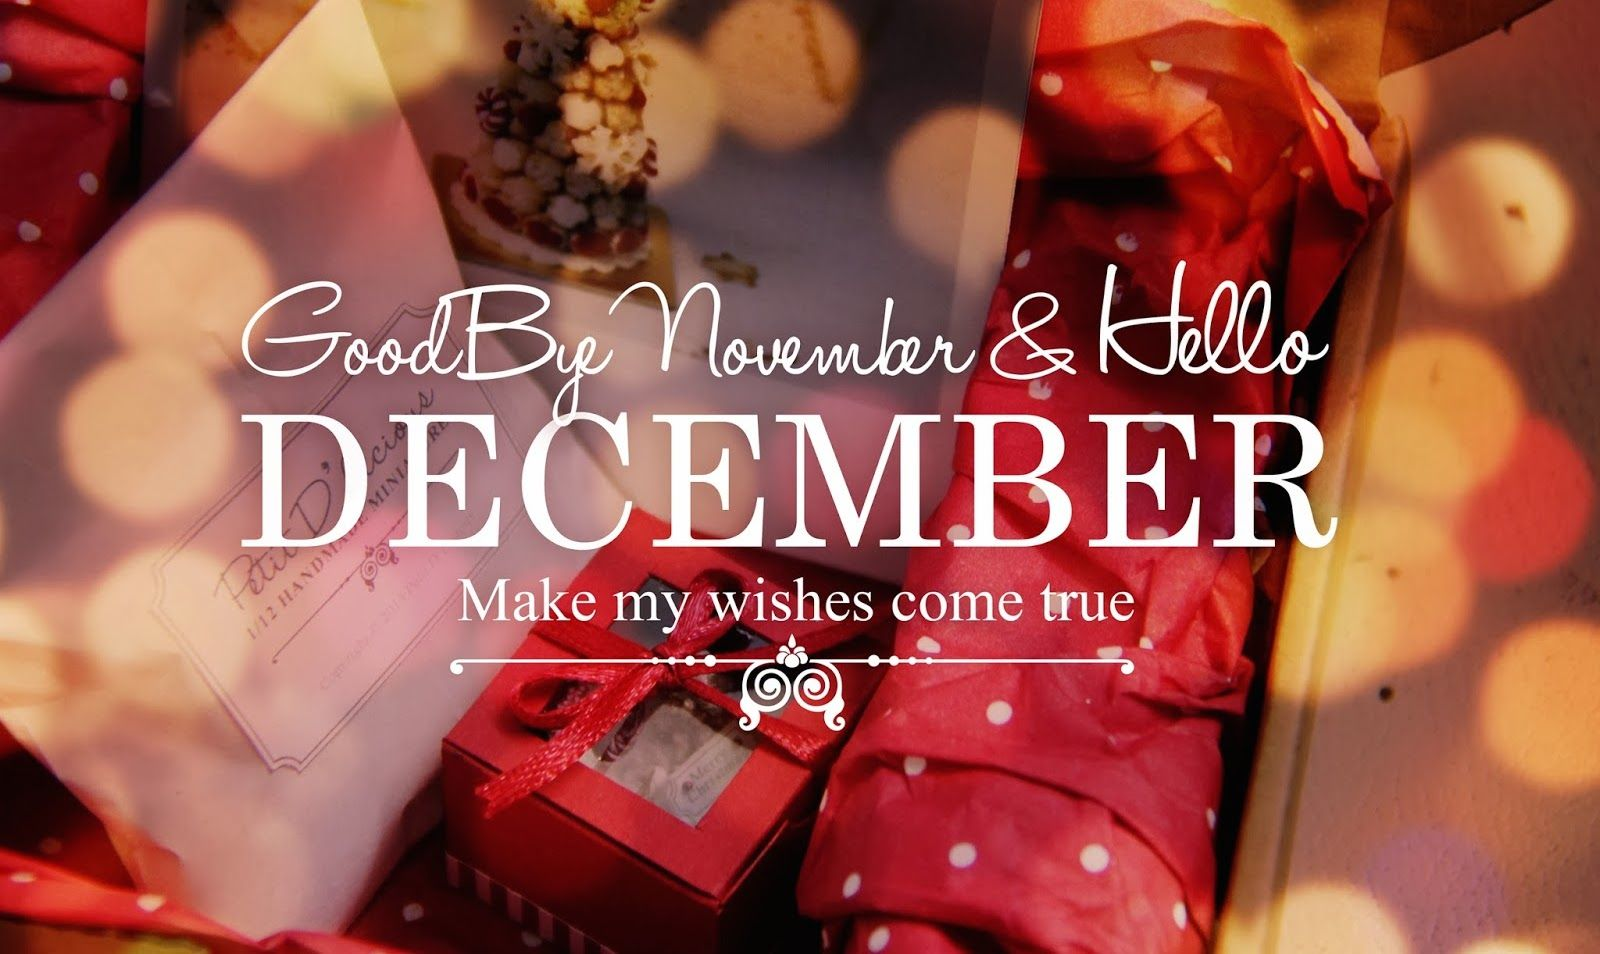 Pin By Deborah Griffin Woodson On Months Of The Year Hello December Quotes December Quotes Welcome December Quotes